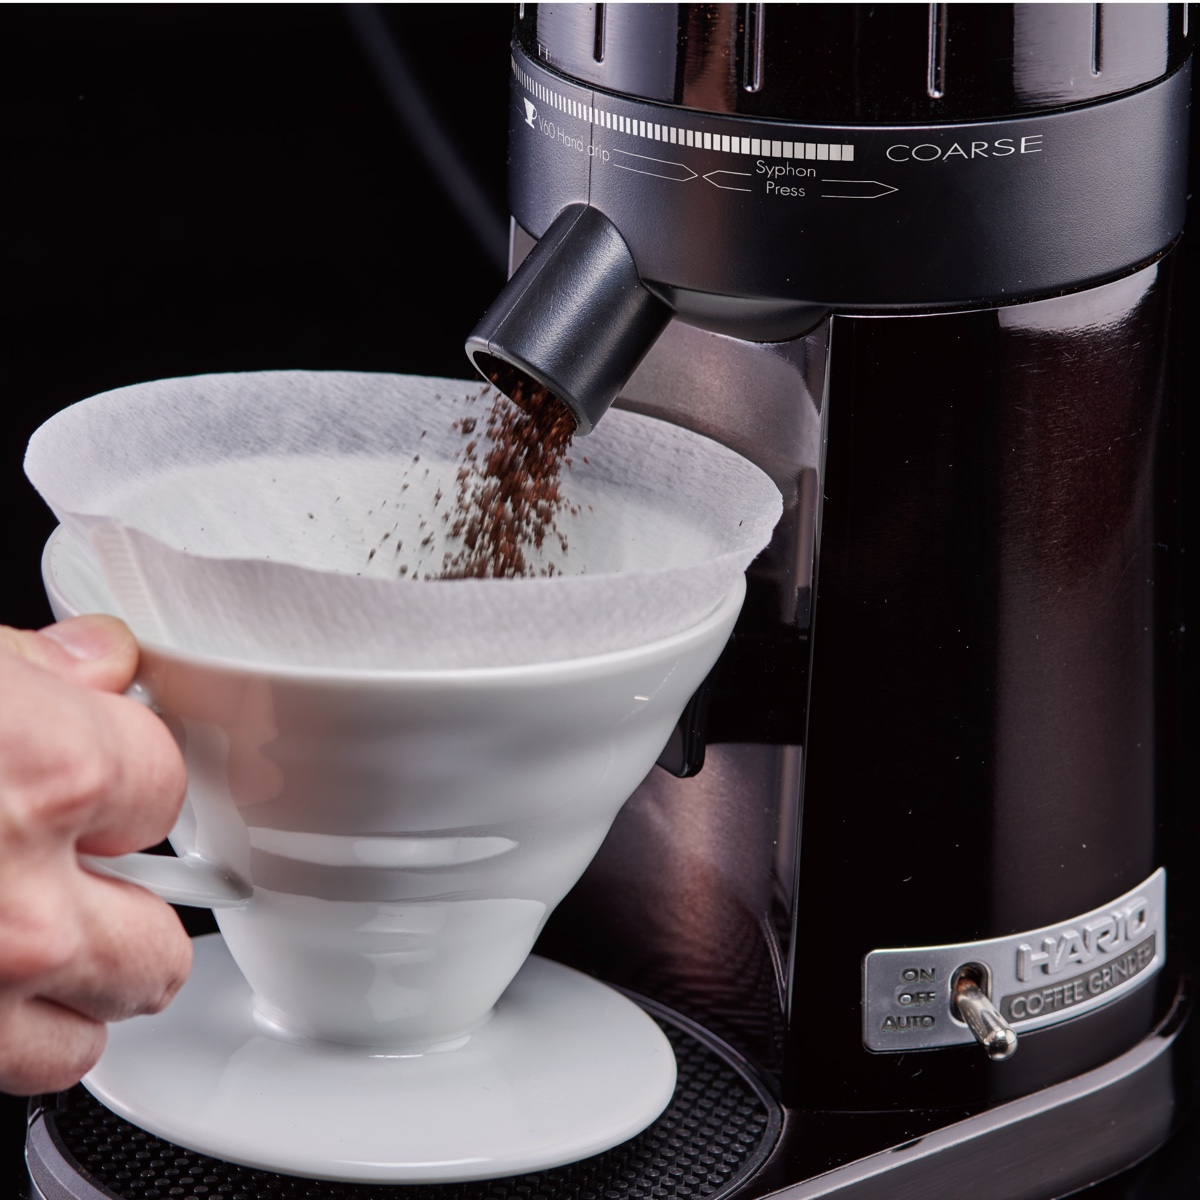 Hario electric V60 coffee grinder.